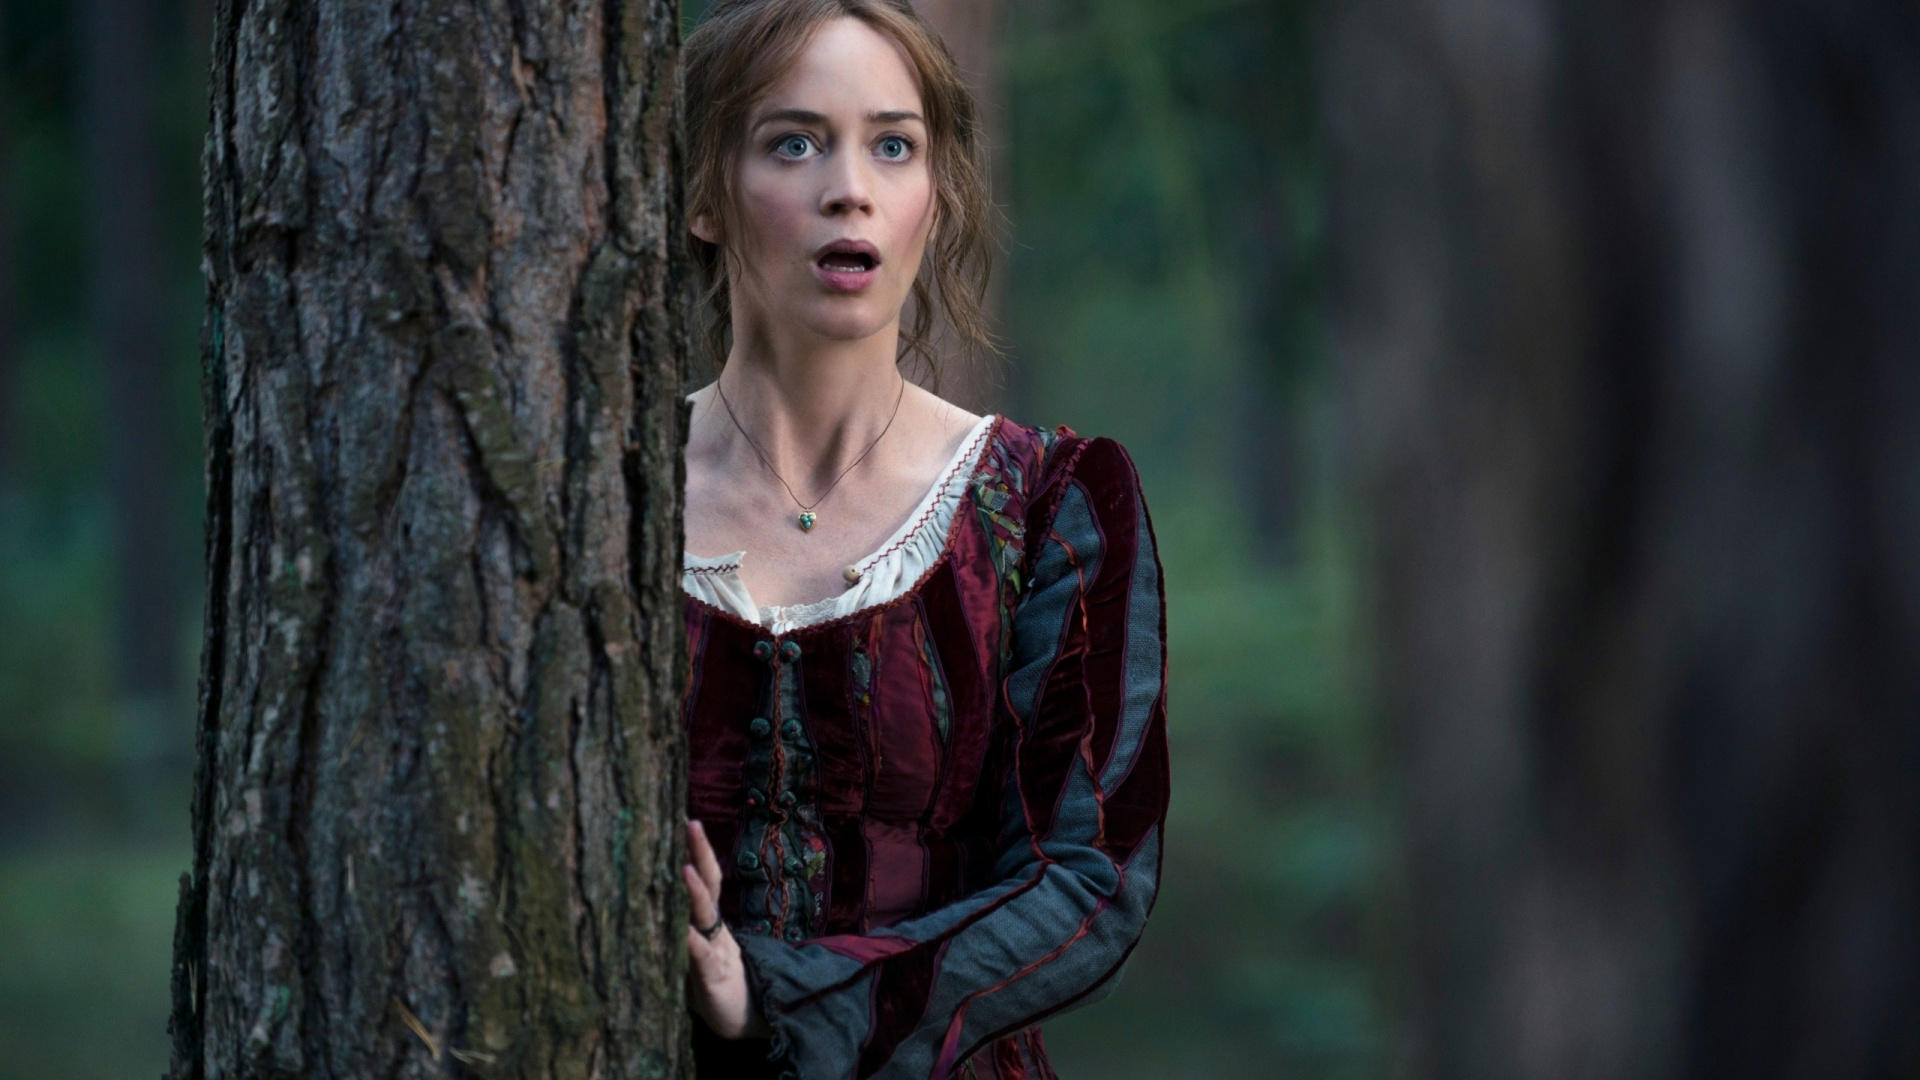 1920x1080 Into the Woods Emily Blunt desktop PC and Mac wallpaper